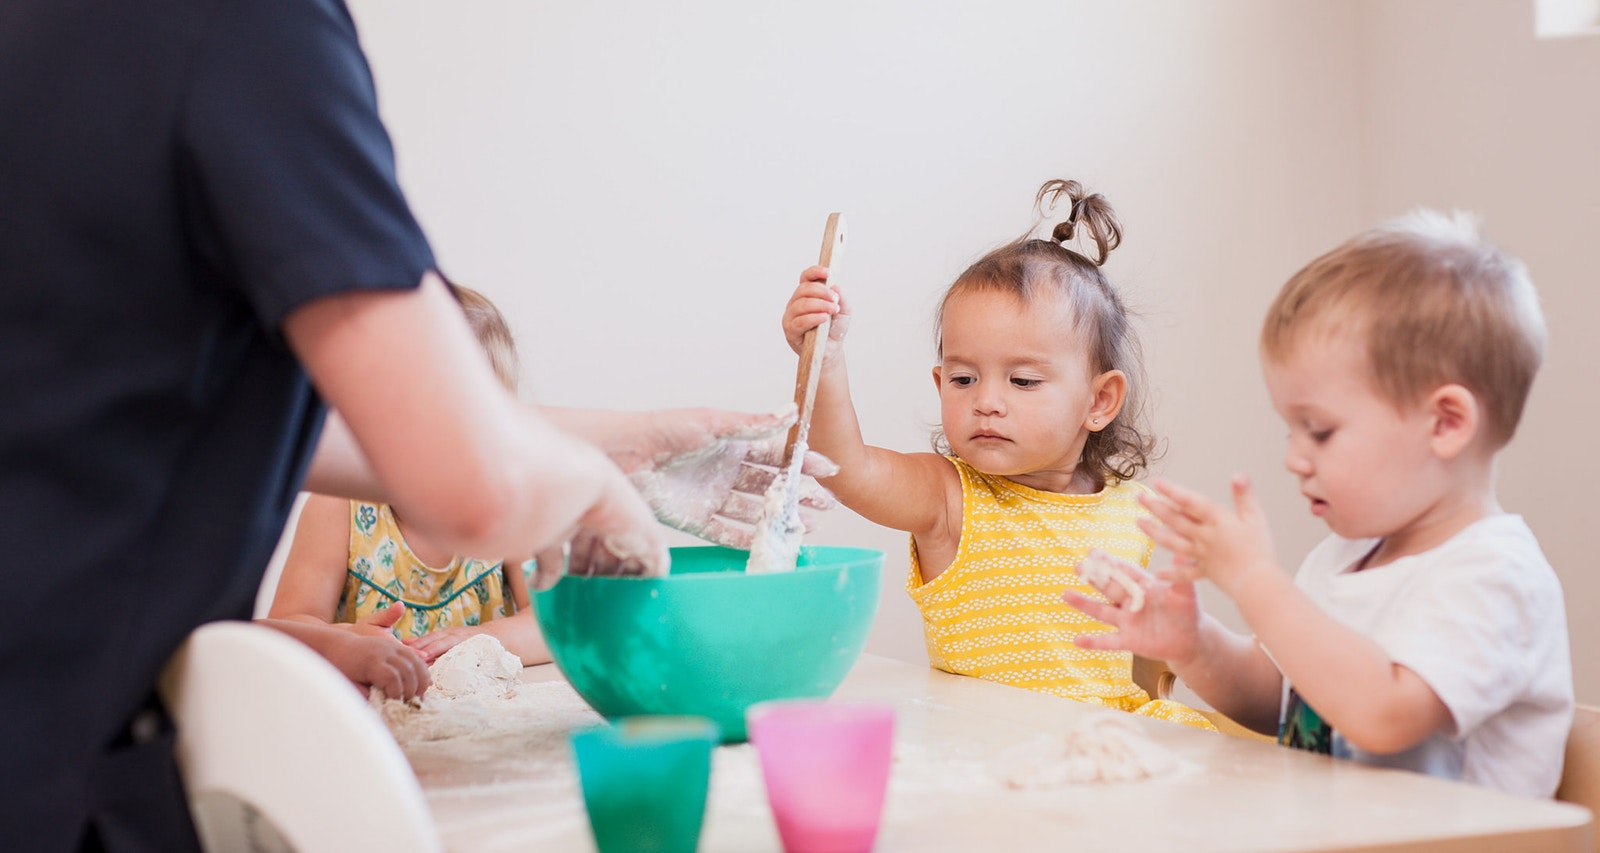 Child care drop off doesn't have to be stressful